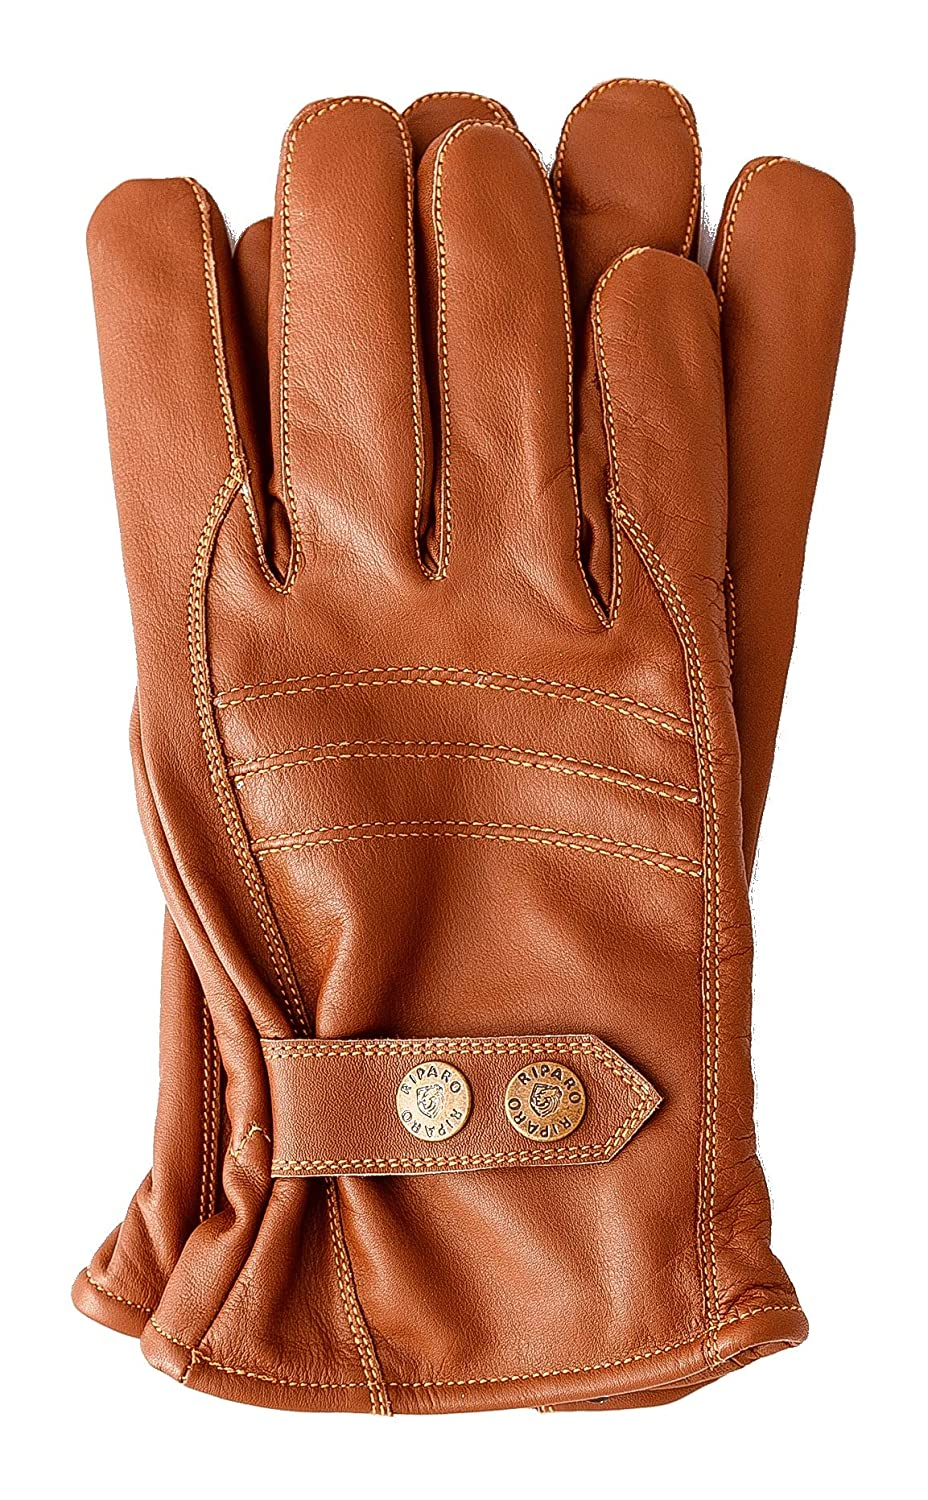 Riparo Mens Insulated Full-Grain Leather Driver Work Winter Gloves